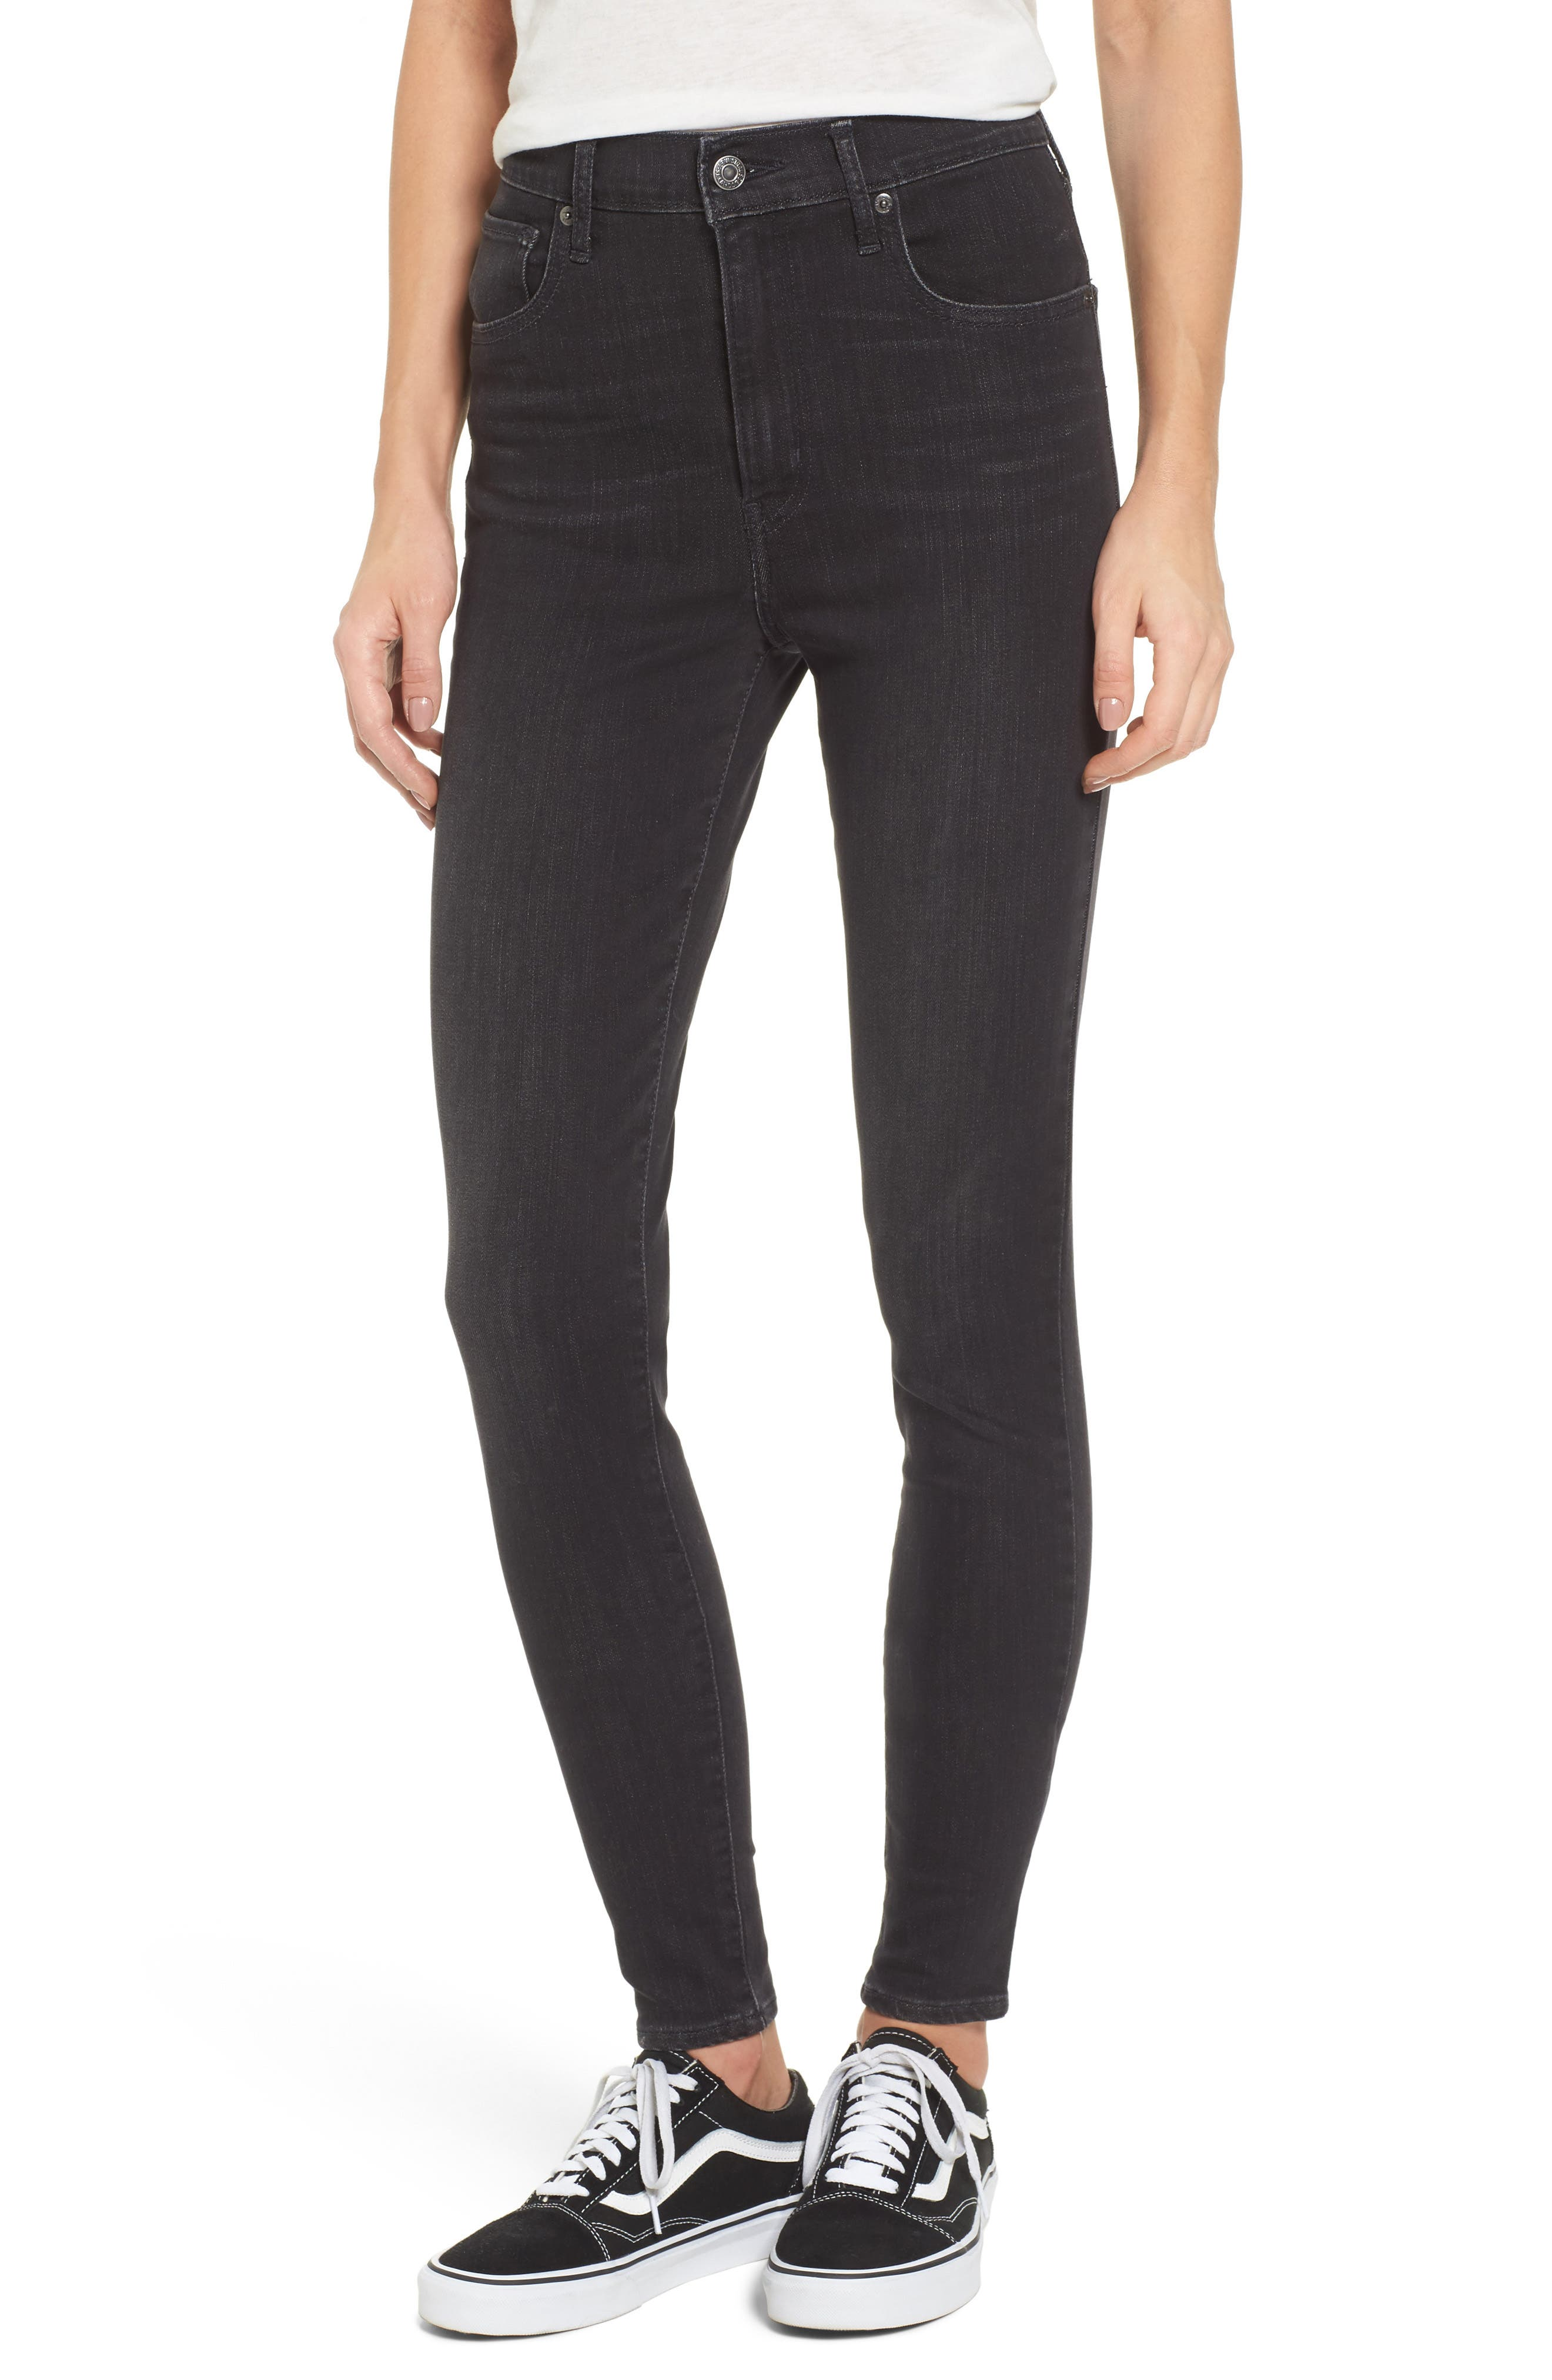 Mile High High Rise Skinny Jeans,                         Main,                         color, 001